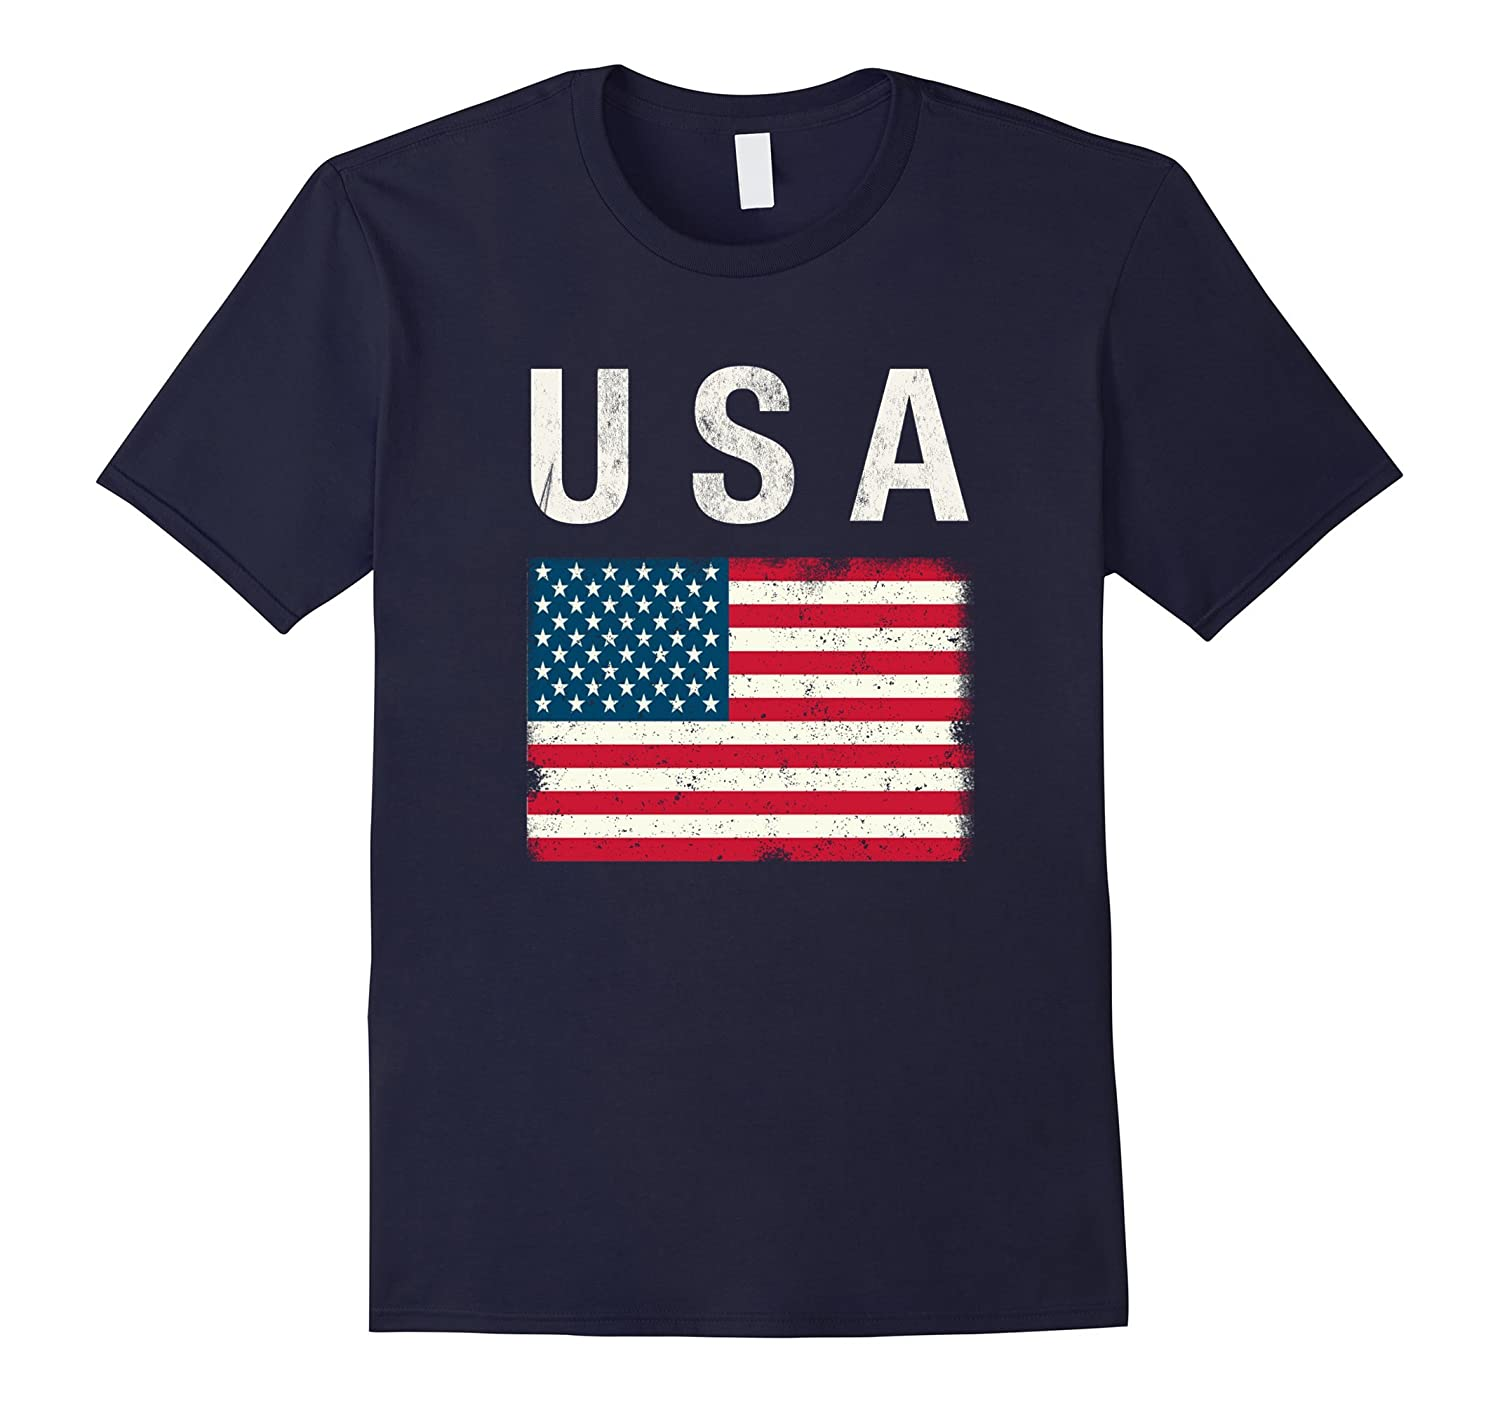 Vintage USA T Shirt Patriotic Red White Blue American Flag-FL